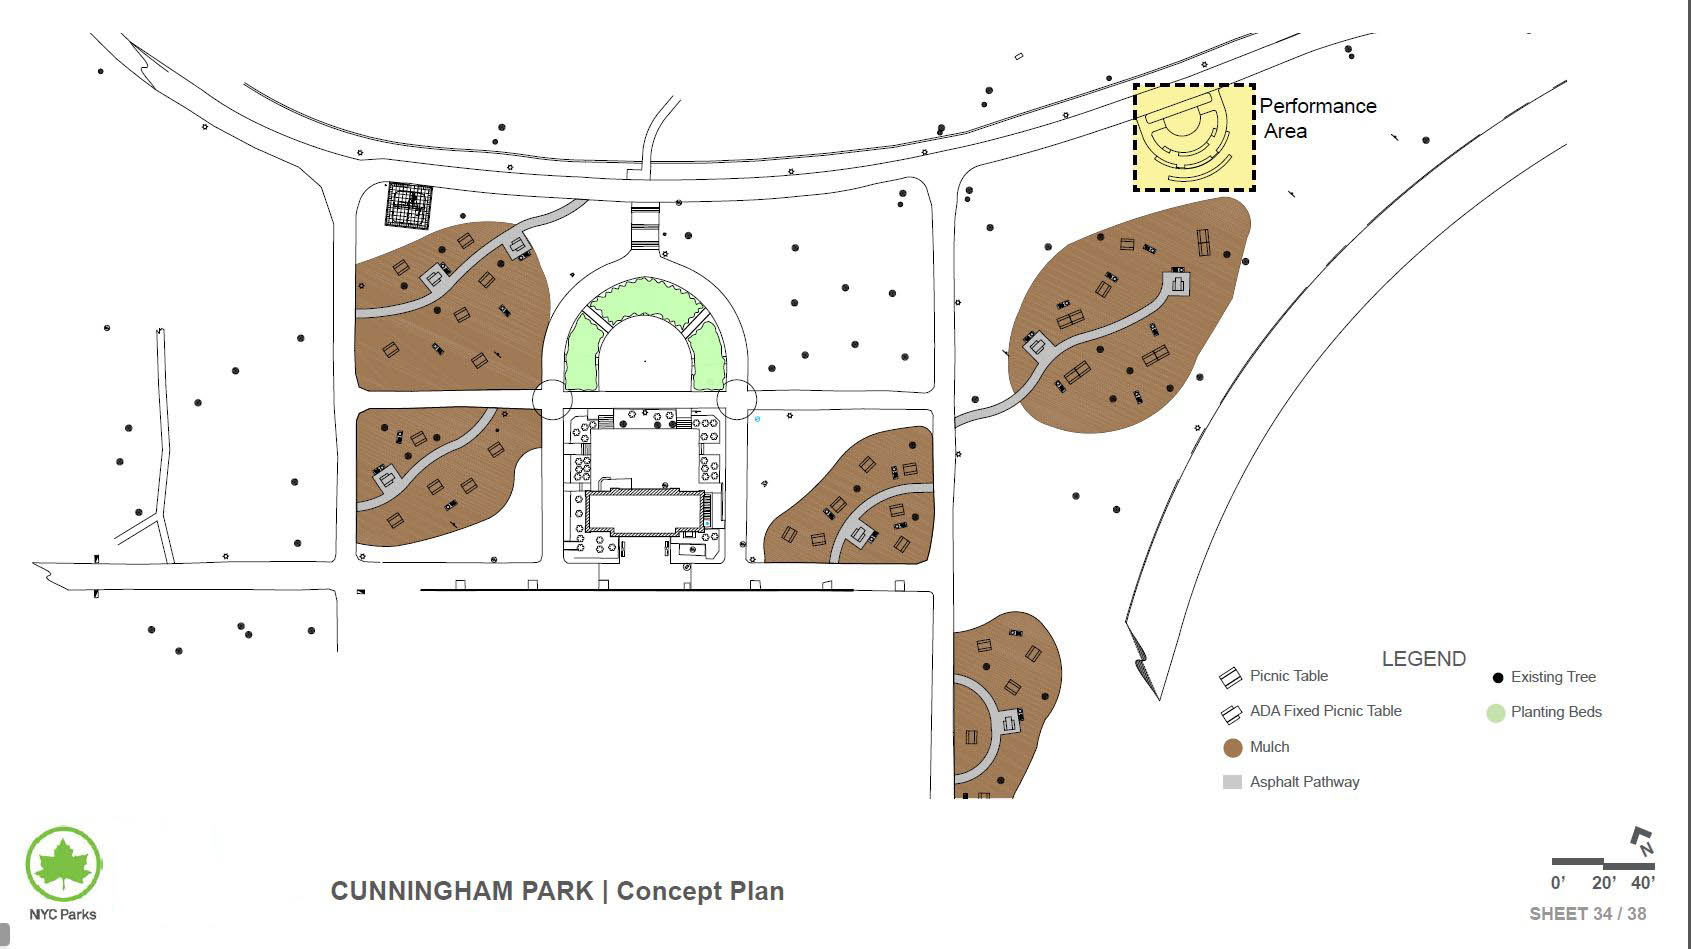 Design of Cunningham Park Picnic Area Reconstruction and Performance Area Construction